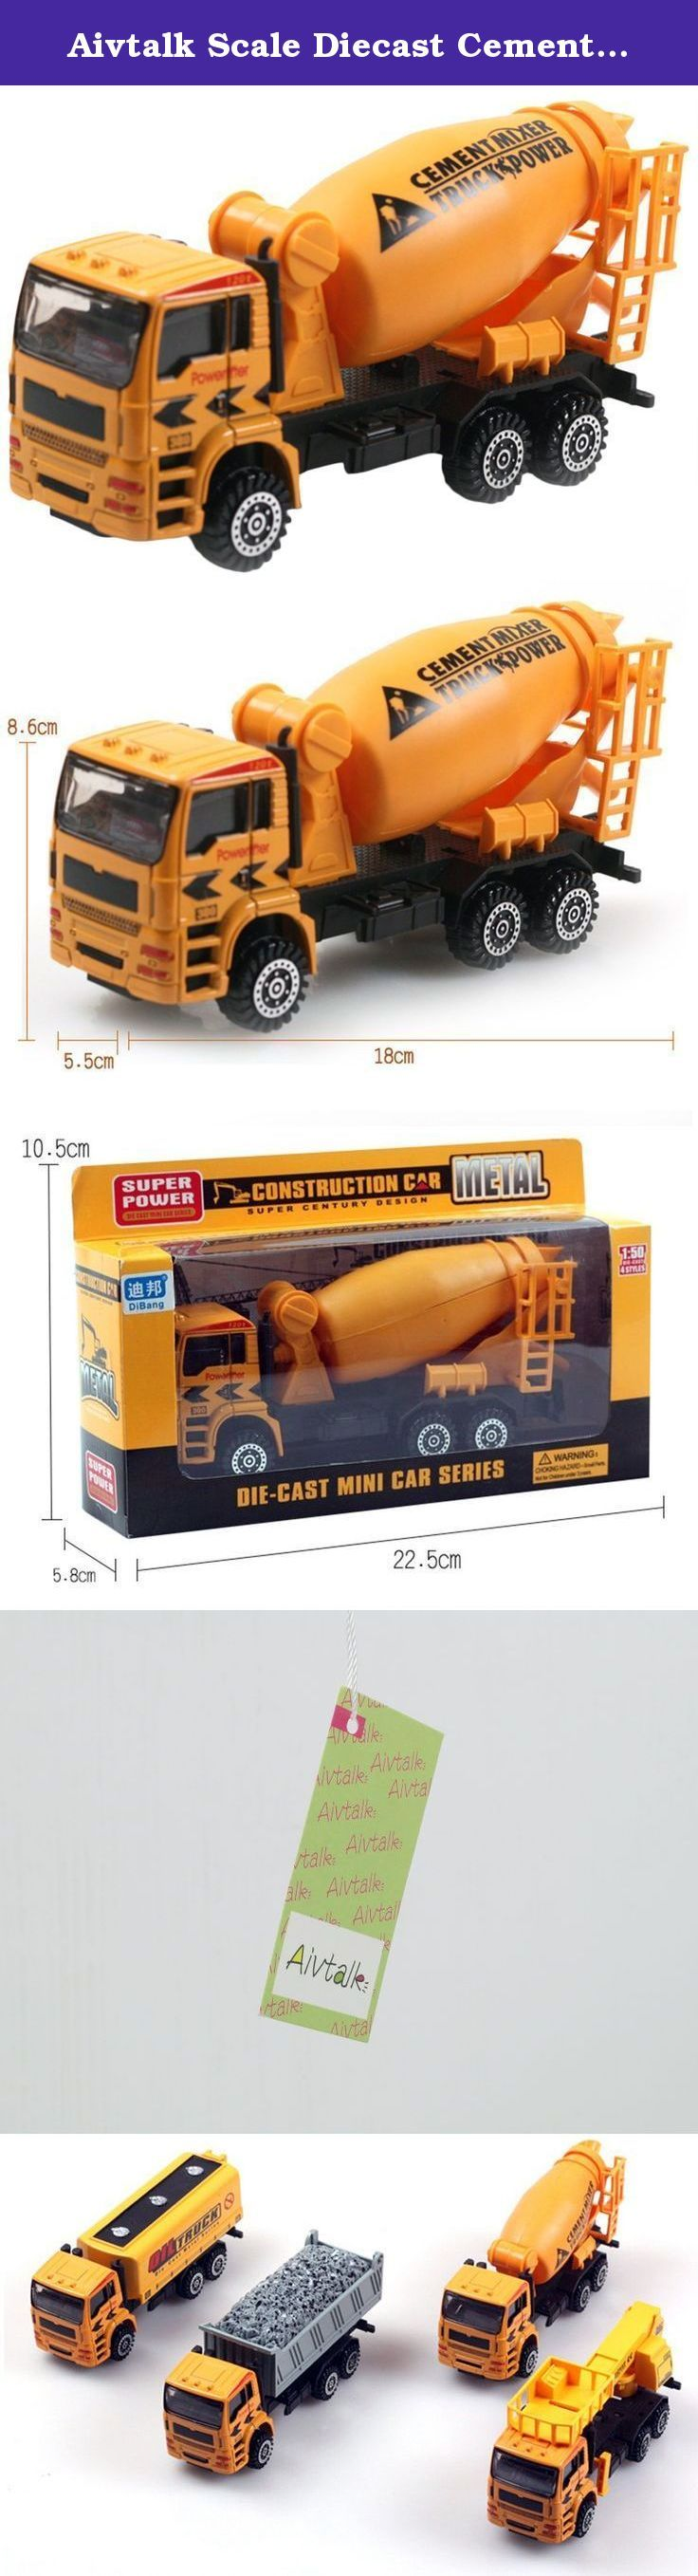 Aivtalk Scale Diecast Cement Mixer Truck Construction Vehicle Transport Car Carrier Truck Toy Model Cars for Boys. Features: Super cool gift for kids Completely non-toxic, safe for children Designed with realistic features in a smaller scale Specifications: Material: Metal & Plastic Scale:1:50 For Ages: 3 years and up Dimensions: approx. 18*8.6*5.5cm Color:As picture Package includes: 1 * Toy truck.